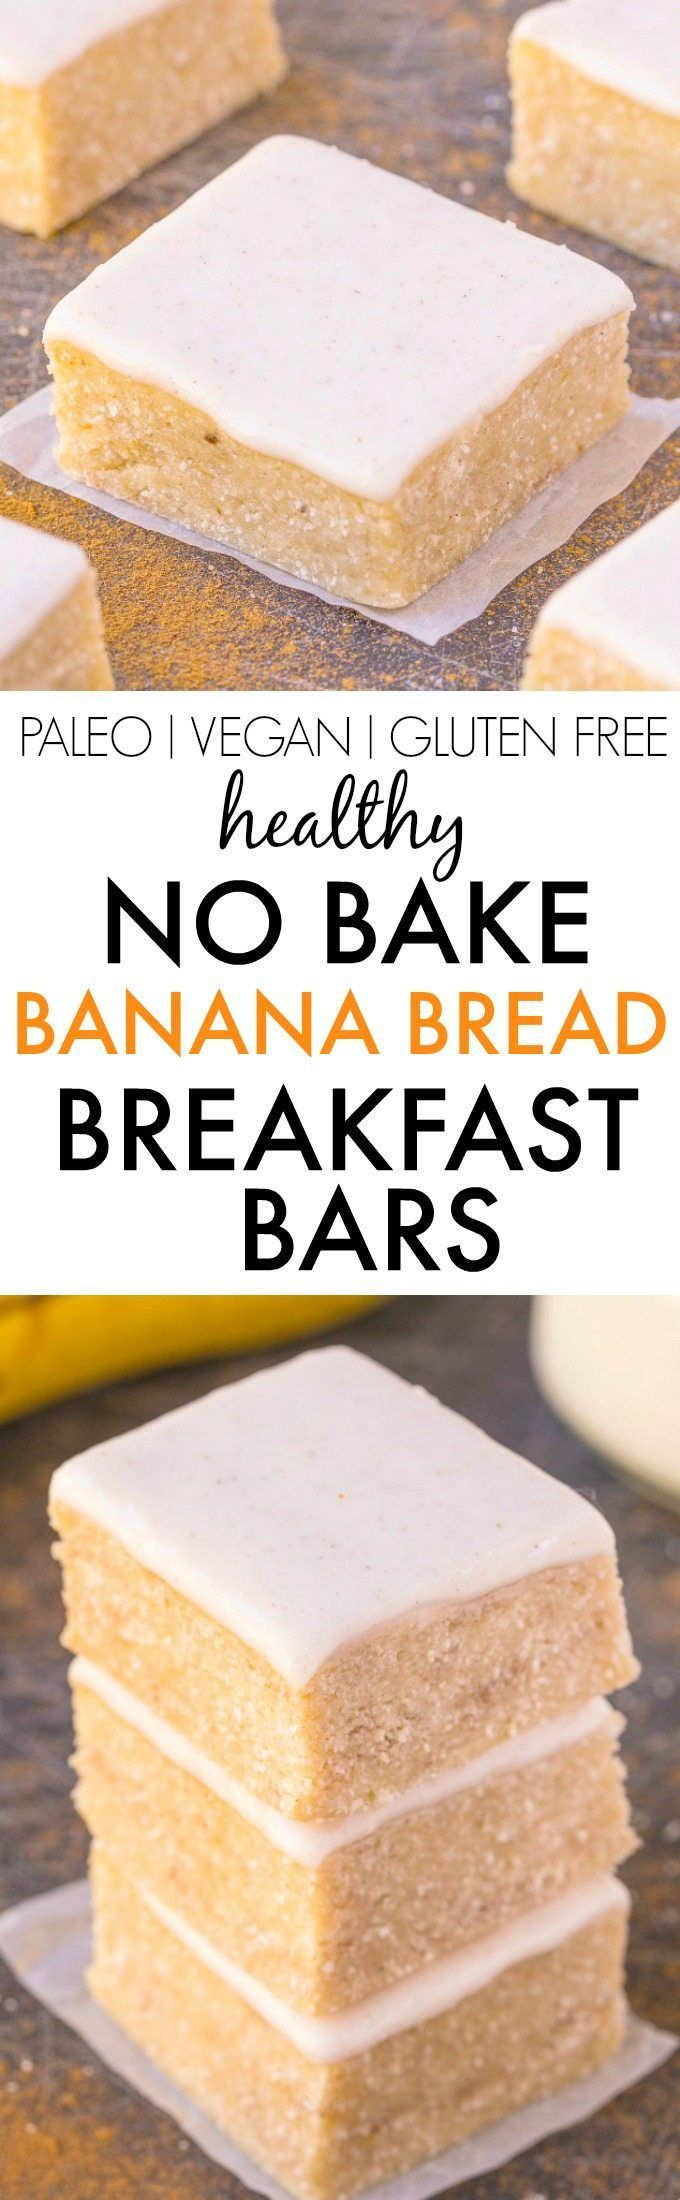 Healthy NO BAKE Banana Bread Breakfast Bars- Thick, chewy and JUST like a blondie, but with NO butter, oil, grains or white sugar- It's PACKED with protein too! {vegan, gluten free, paleo recipe}- http://thebigmansworld.com